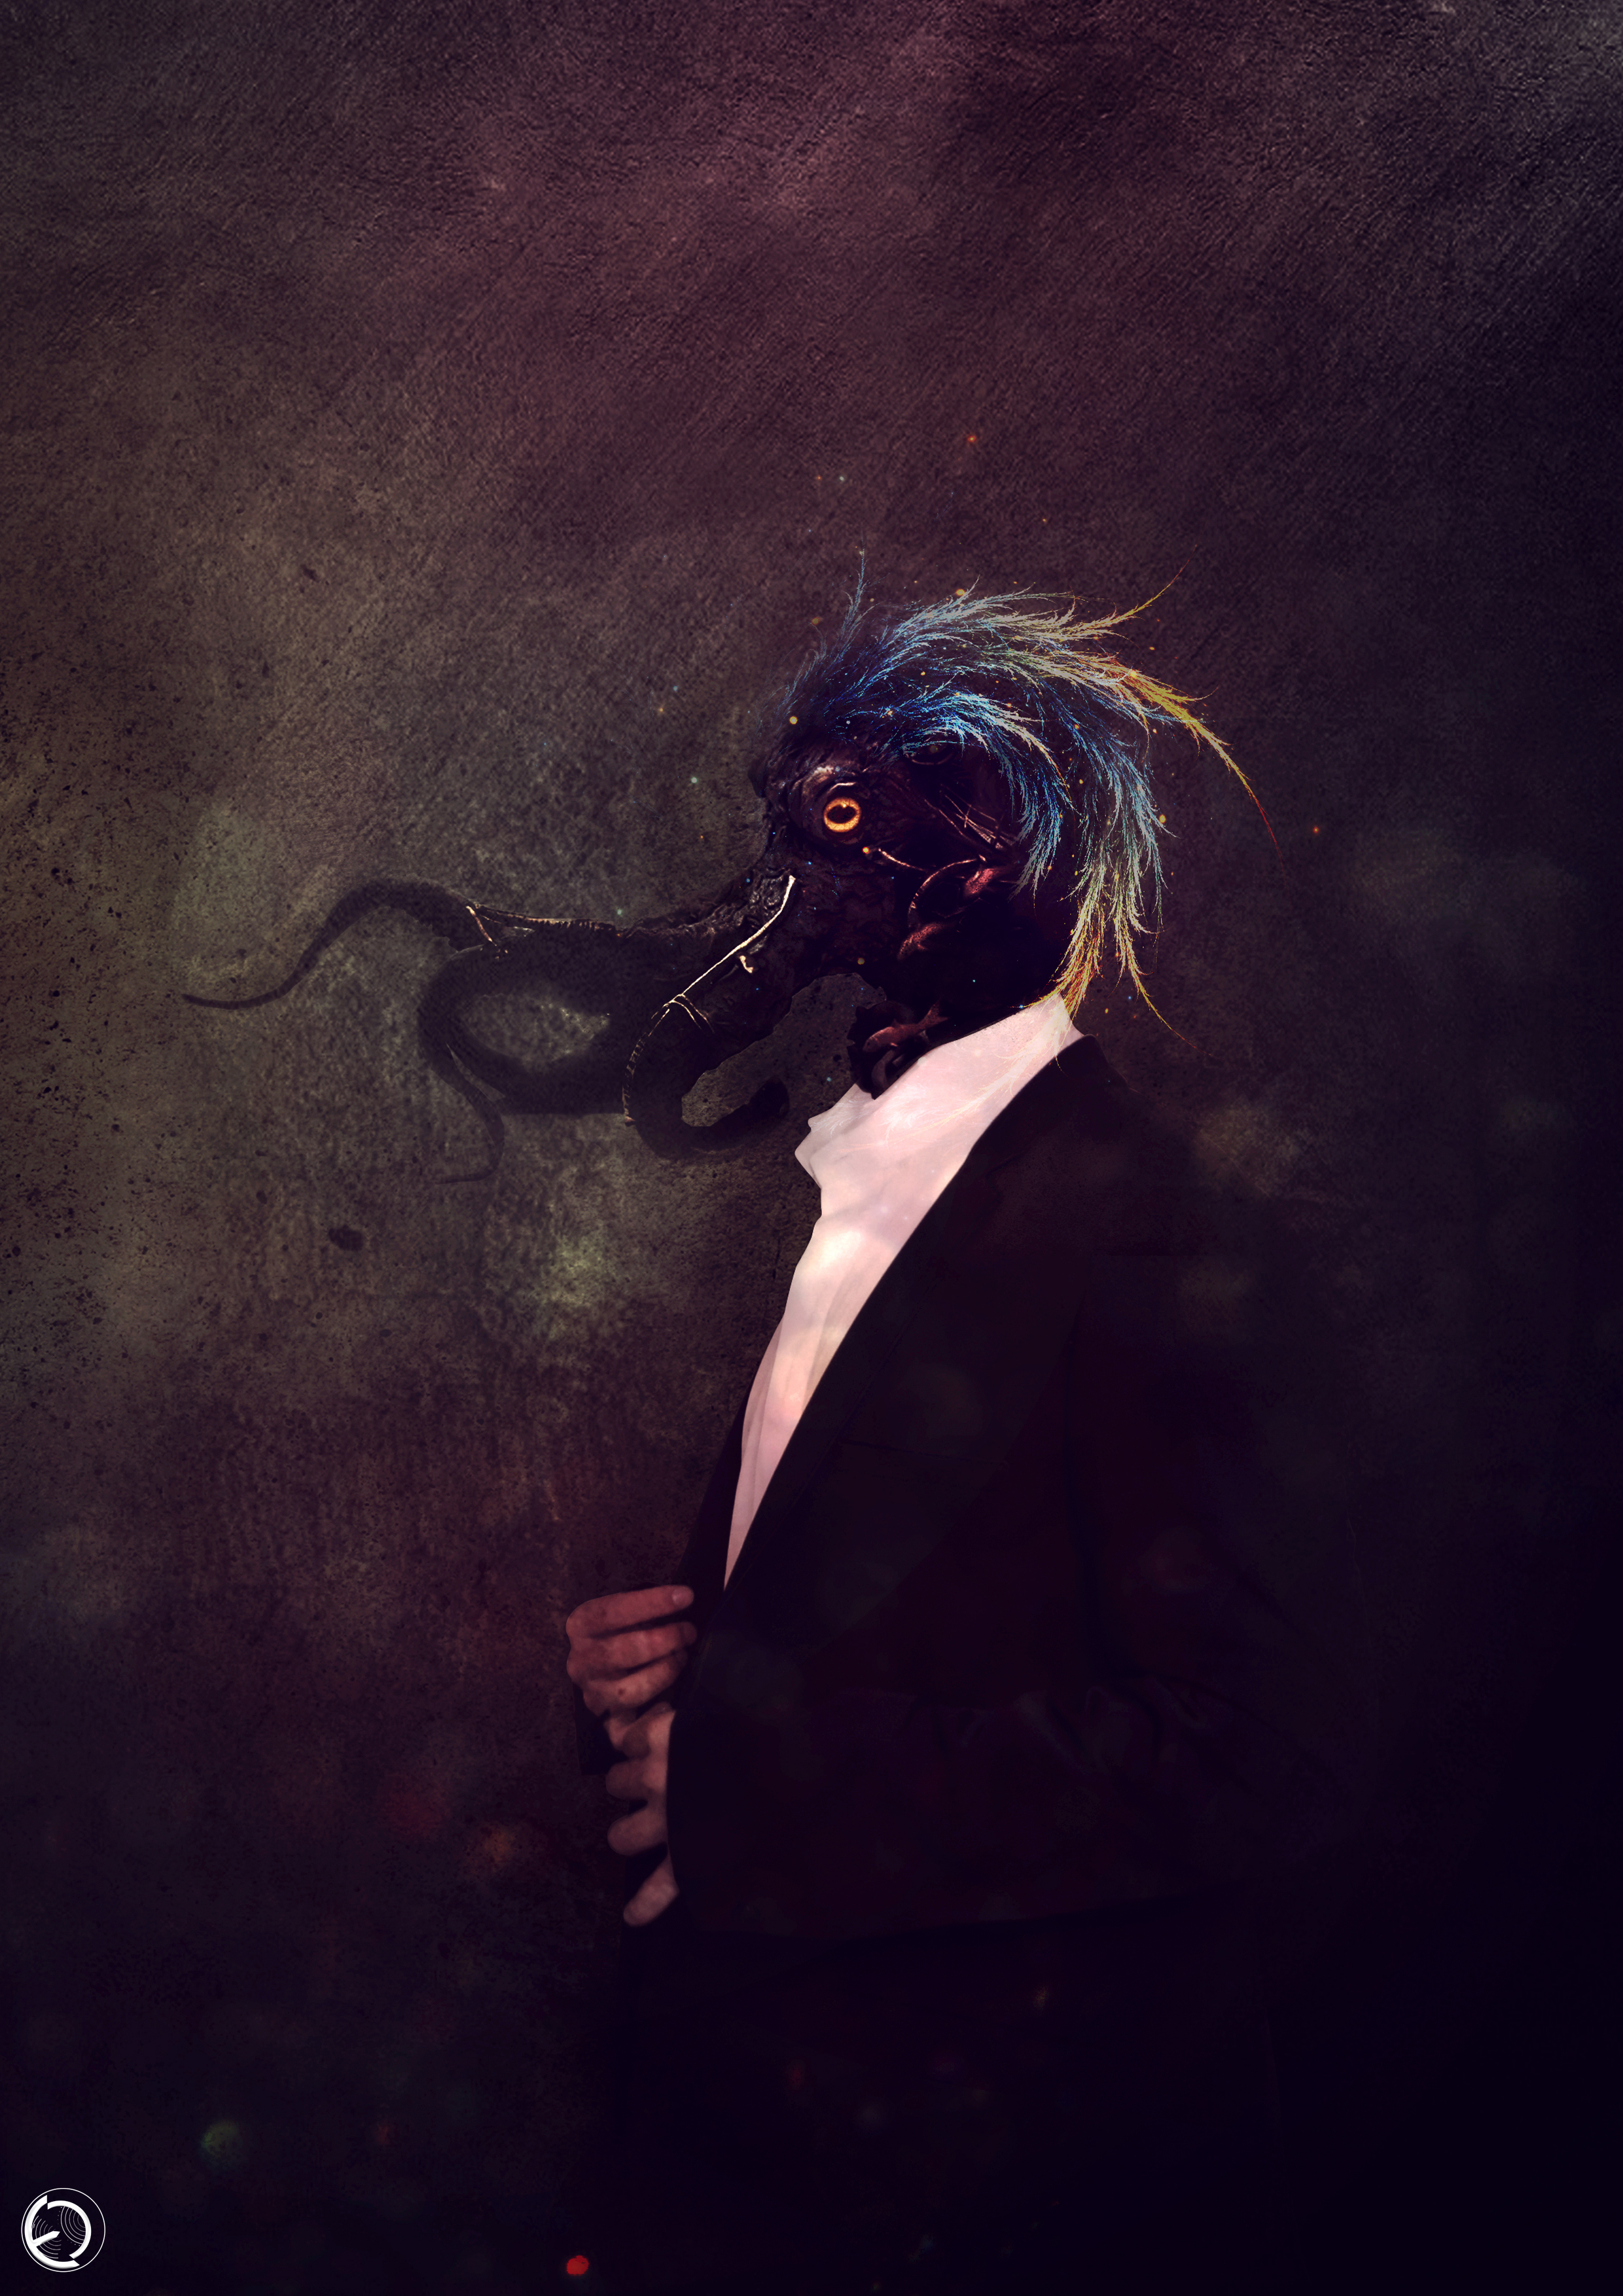 59803 download wallpaper Monster, Being, Creature, Tentacles, Fiction, That's Incredible, Art screensavers and pictures for free